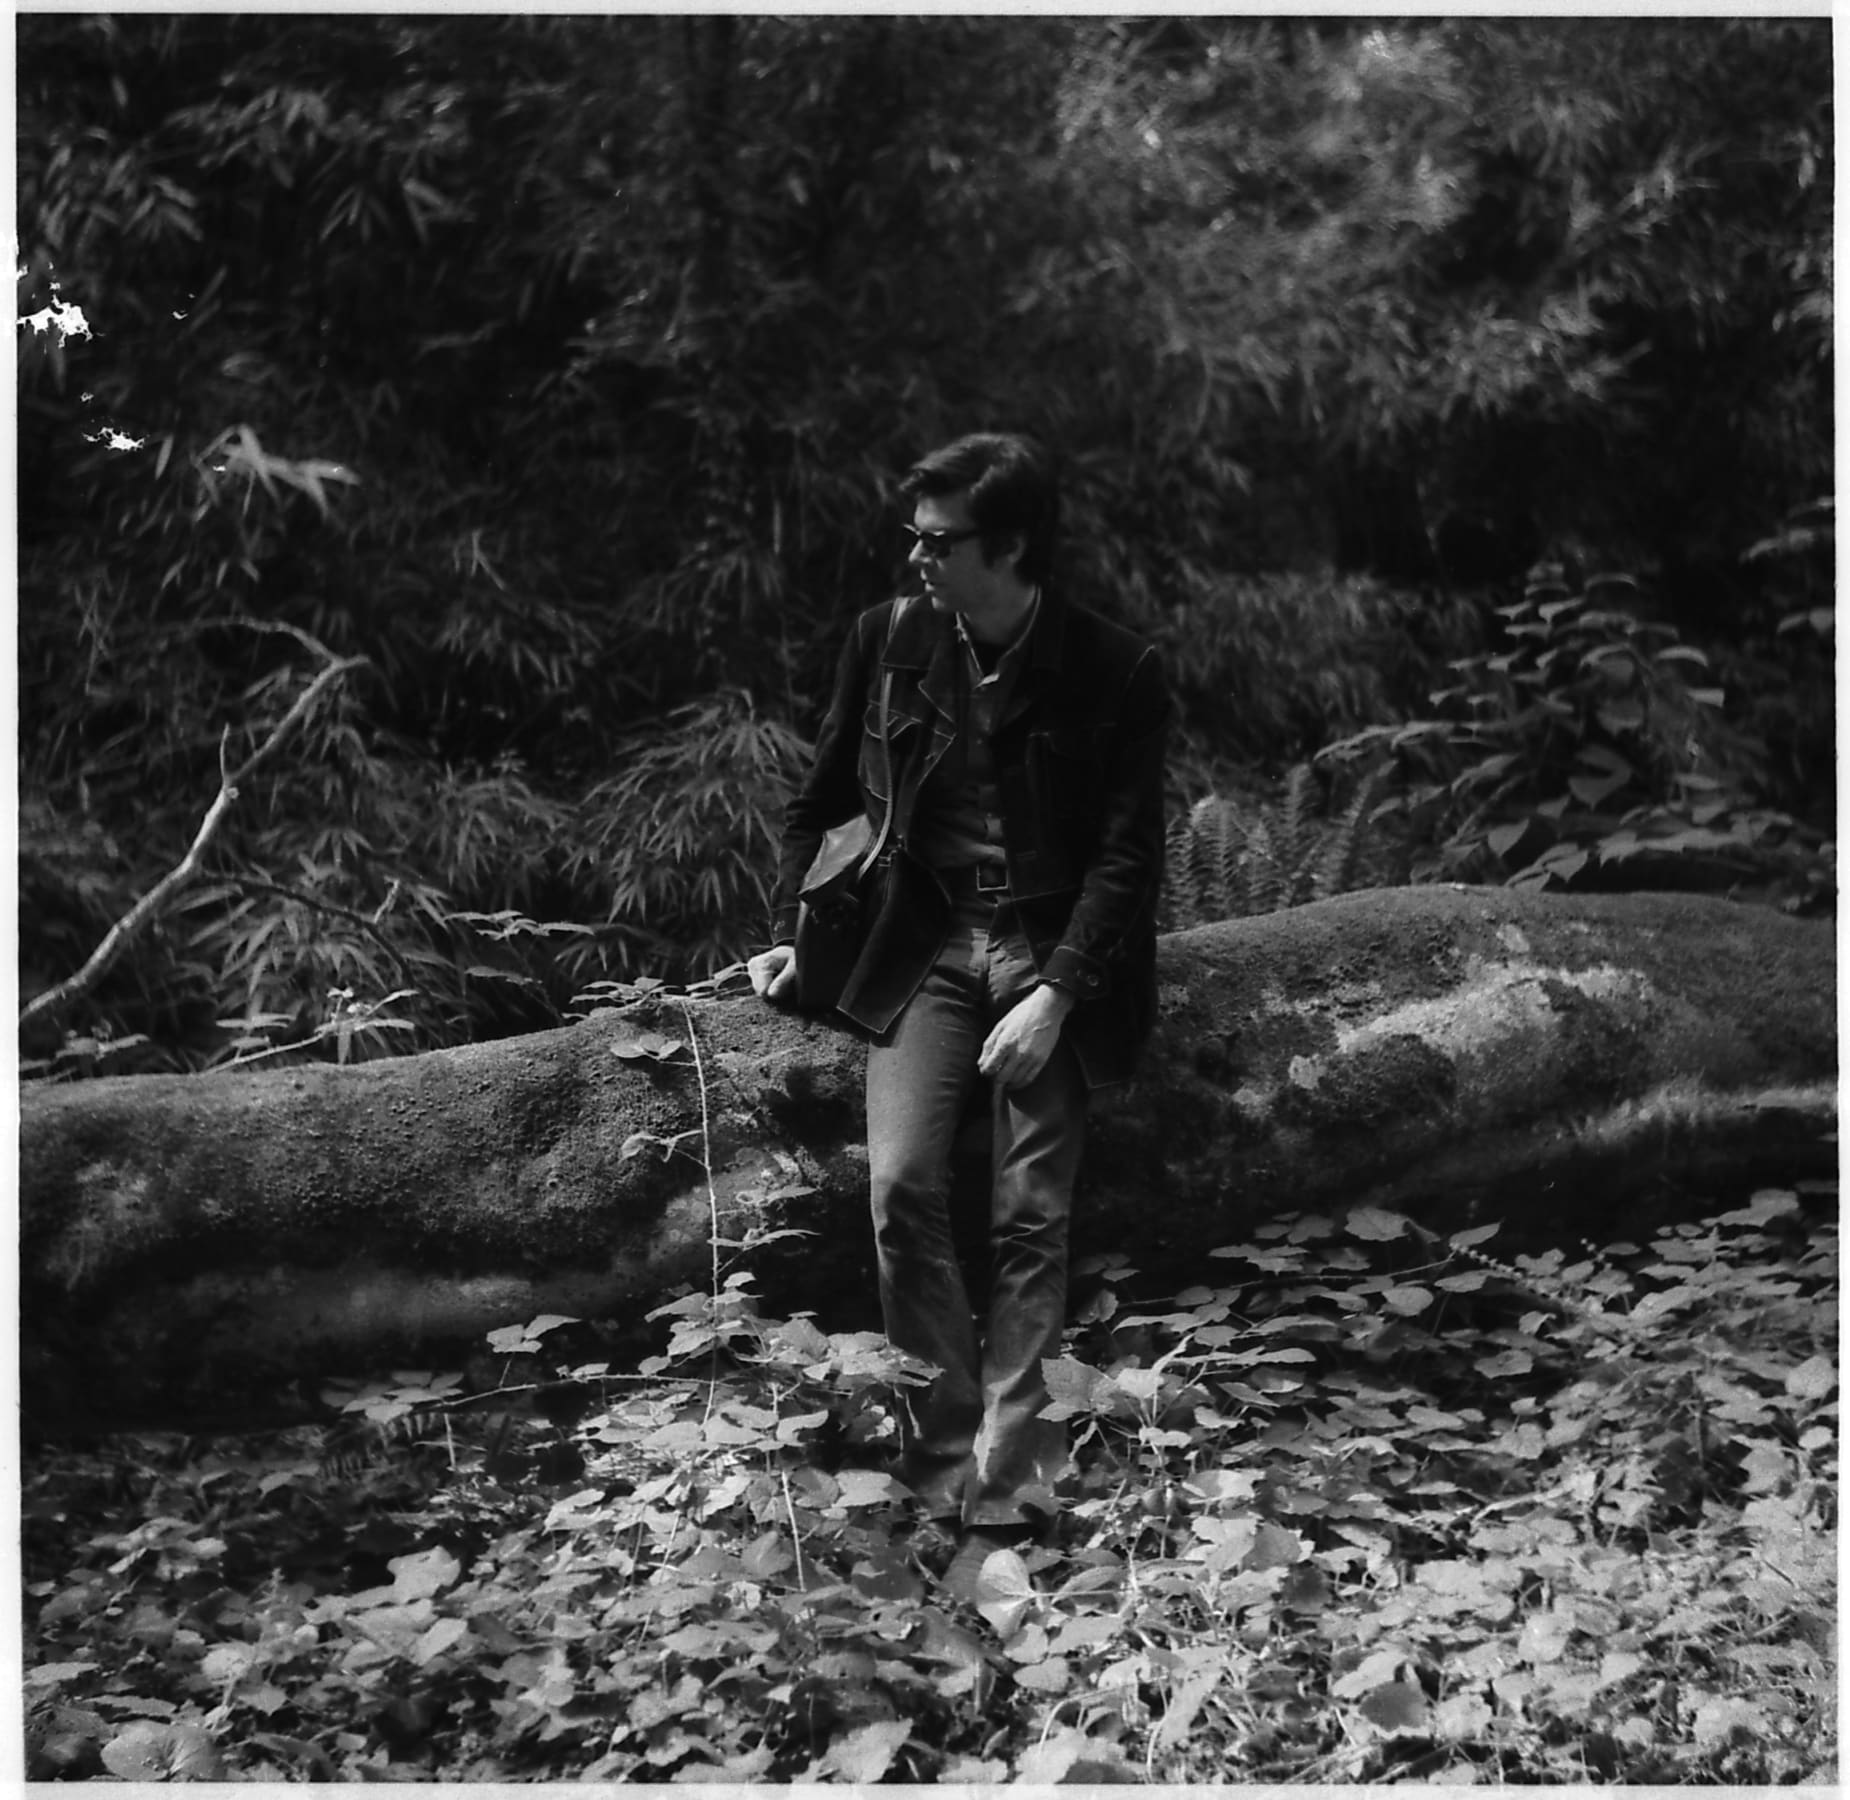 Robert Smithson in the UK working on a Mirror Displacement in 1969, photographed by Nancy Holt. ©Holt/Smithson Foundation, licensed by VAGA at ARS, New York.